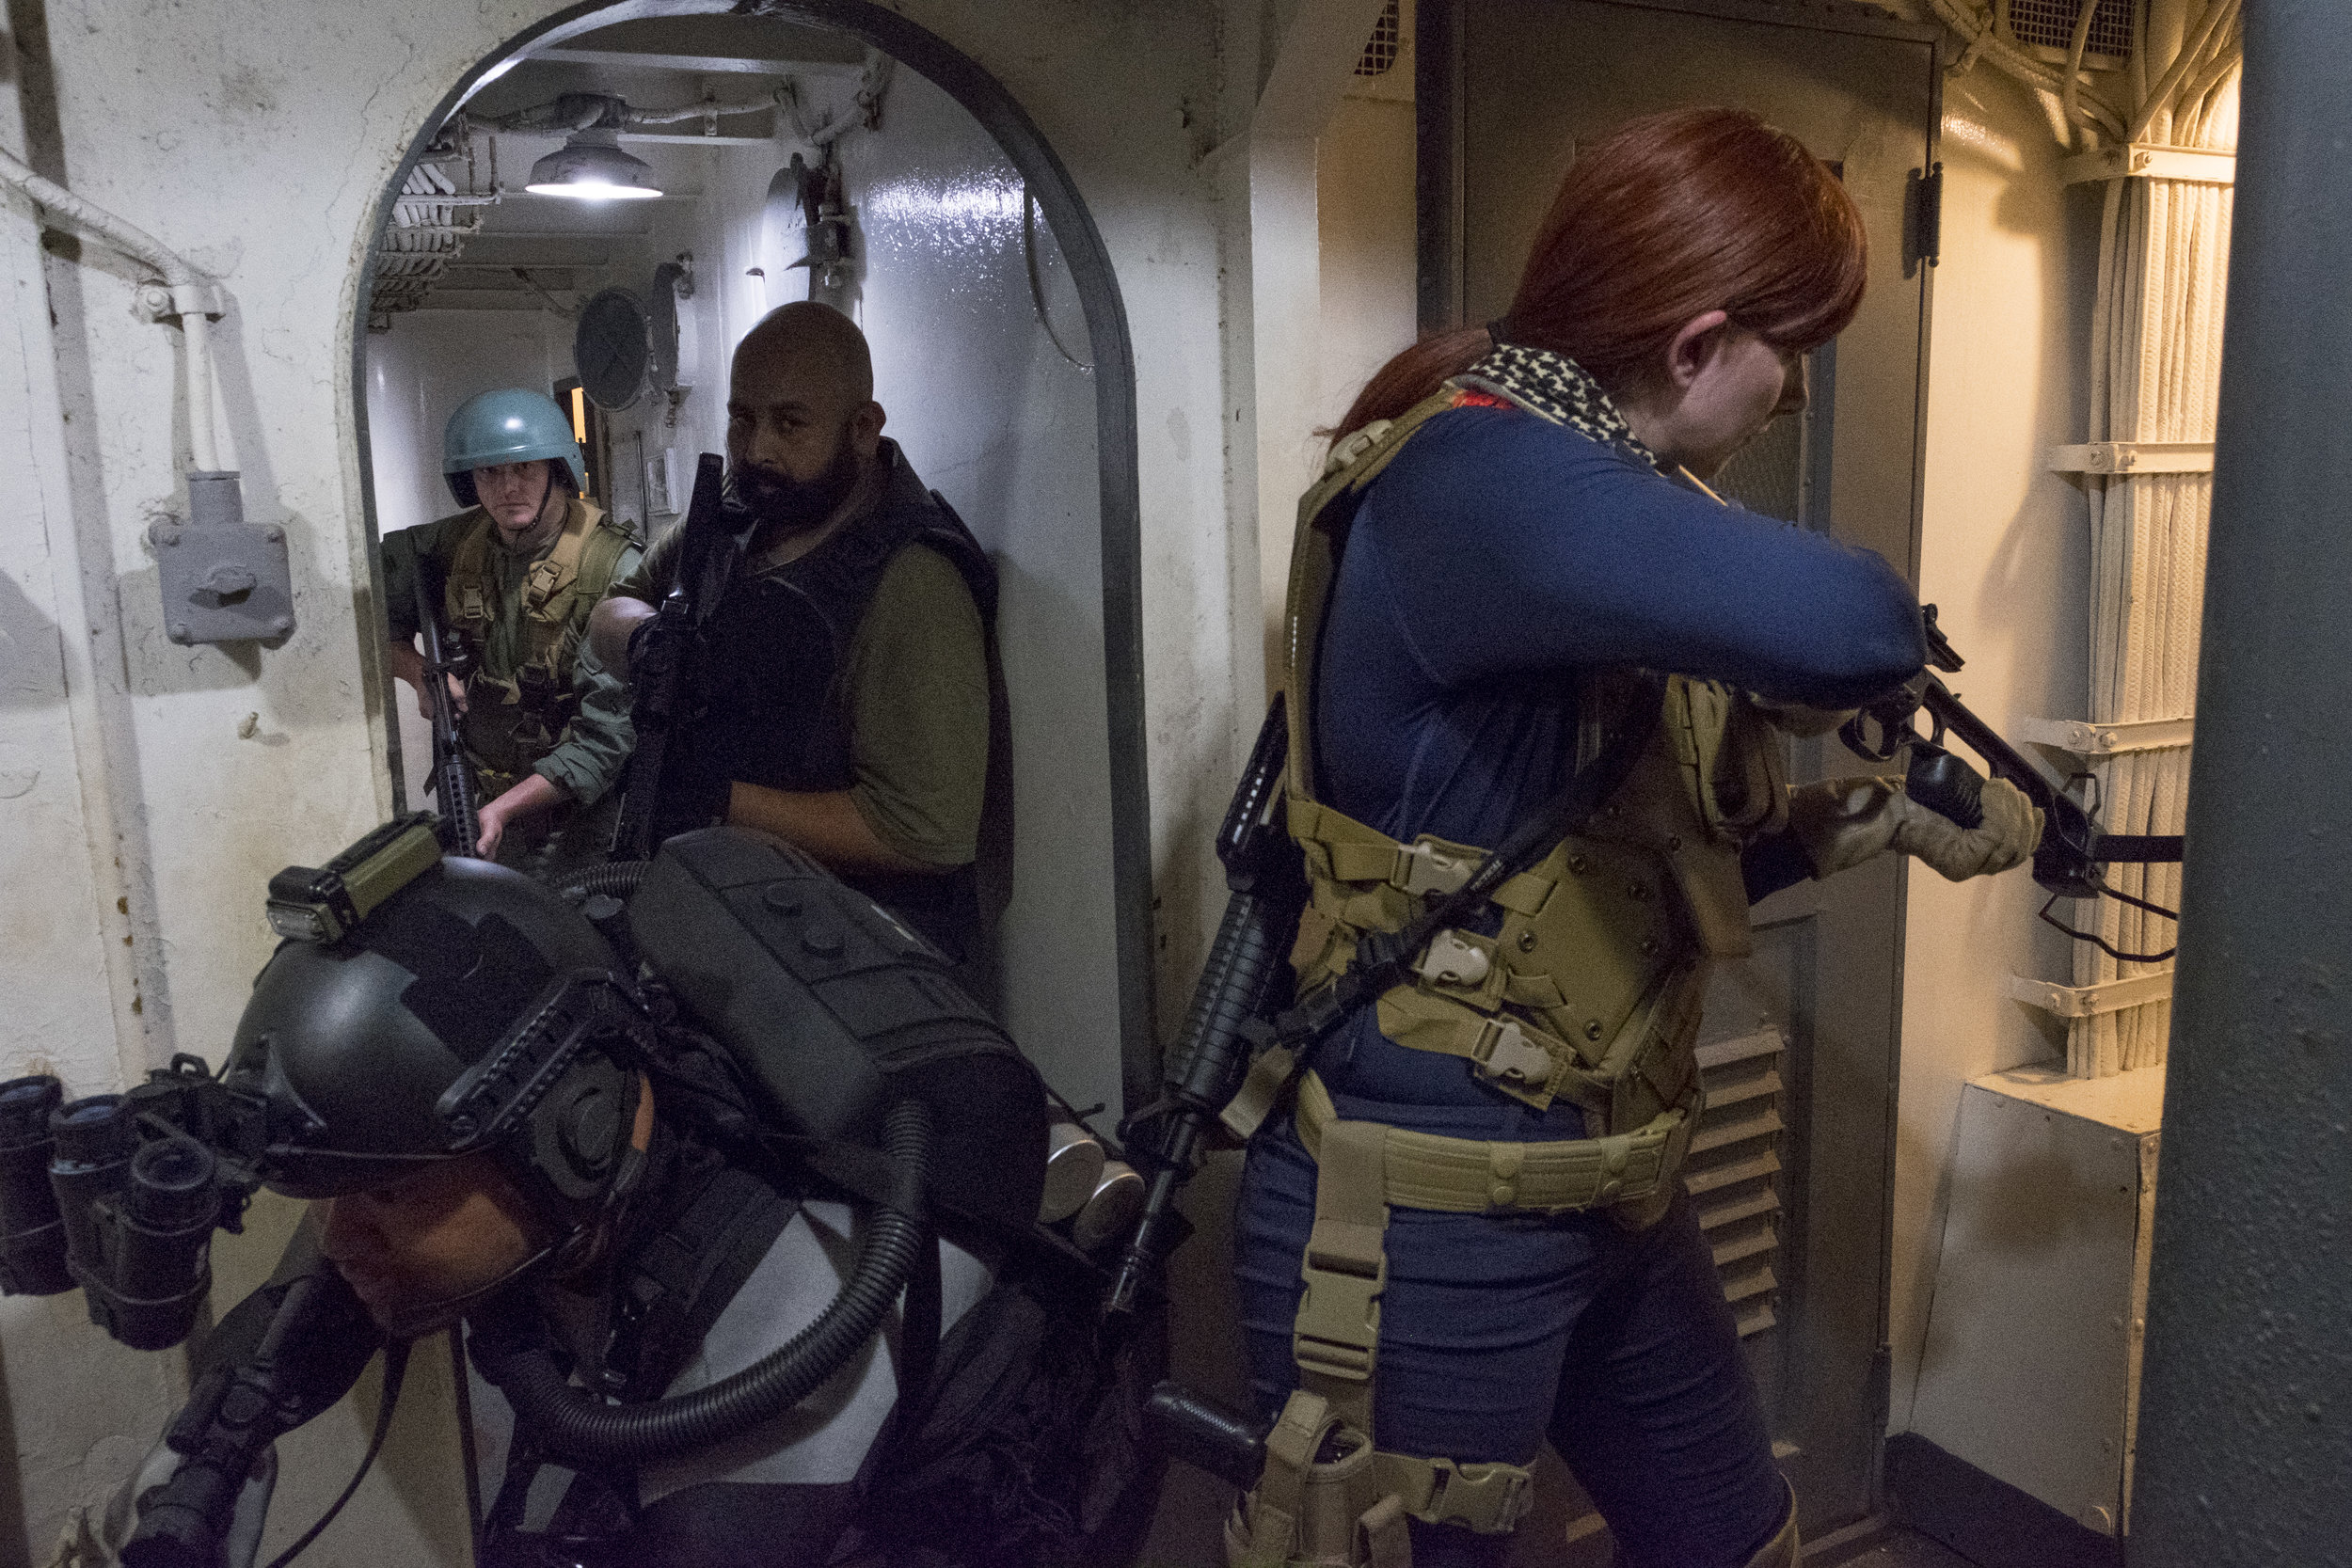 The Fighting 788th in GIJoe cosplay on the USS Stewart